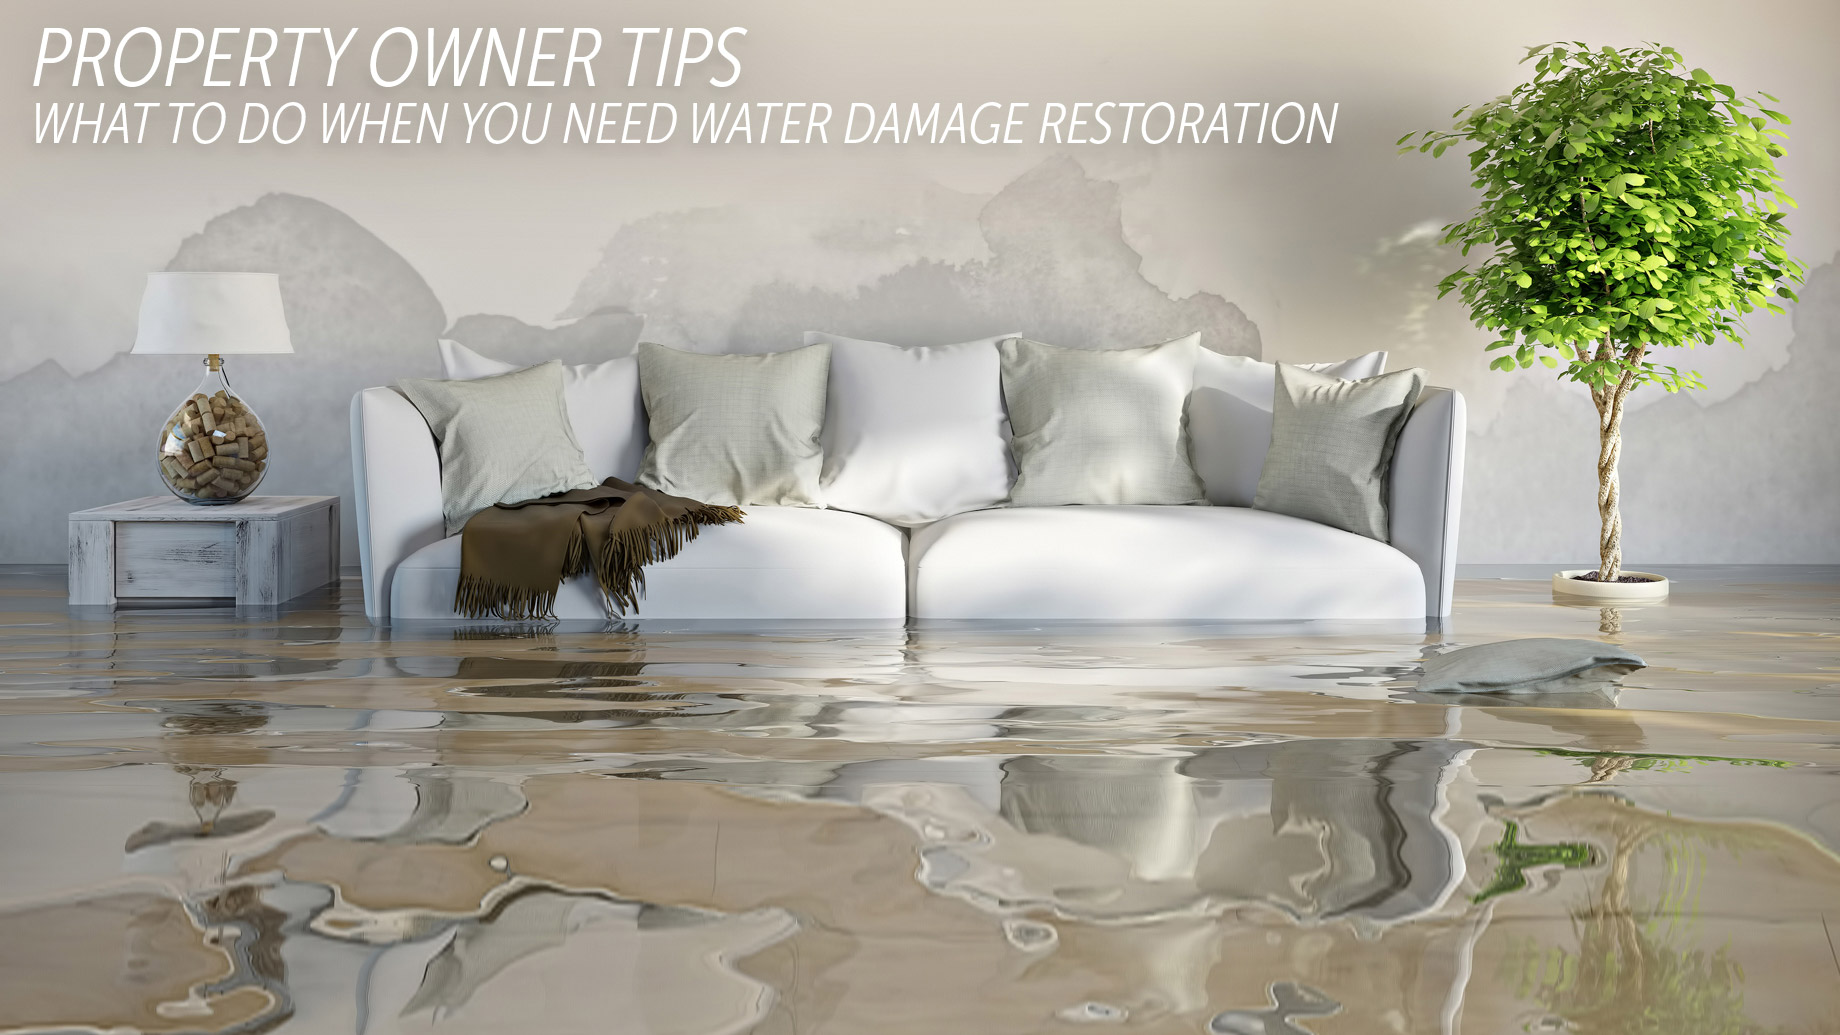 Property Owner Tips - What to Do When You Need Water Damage Restoration